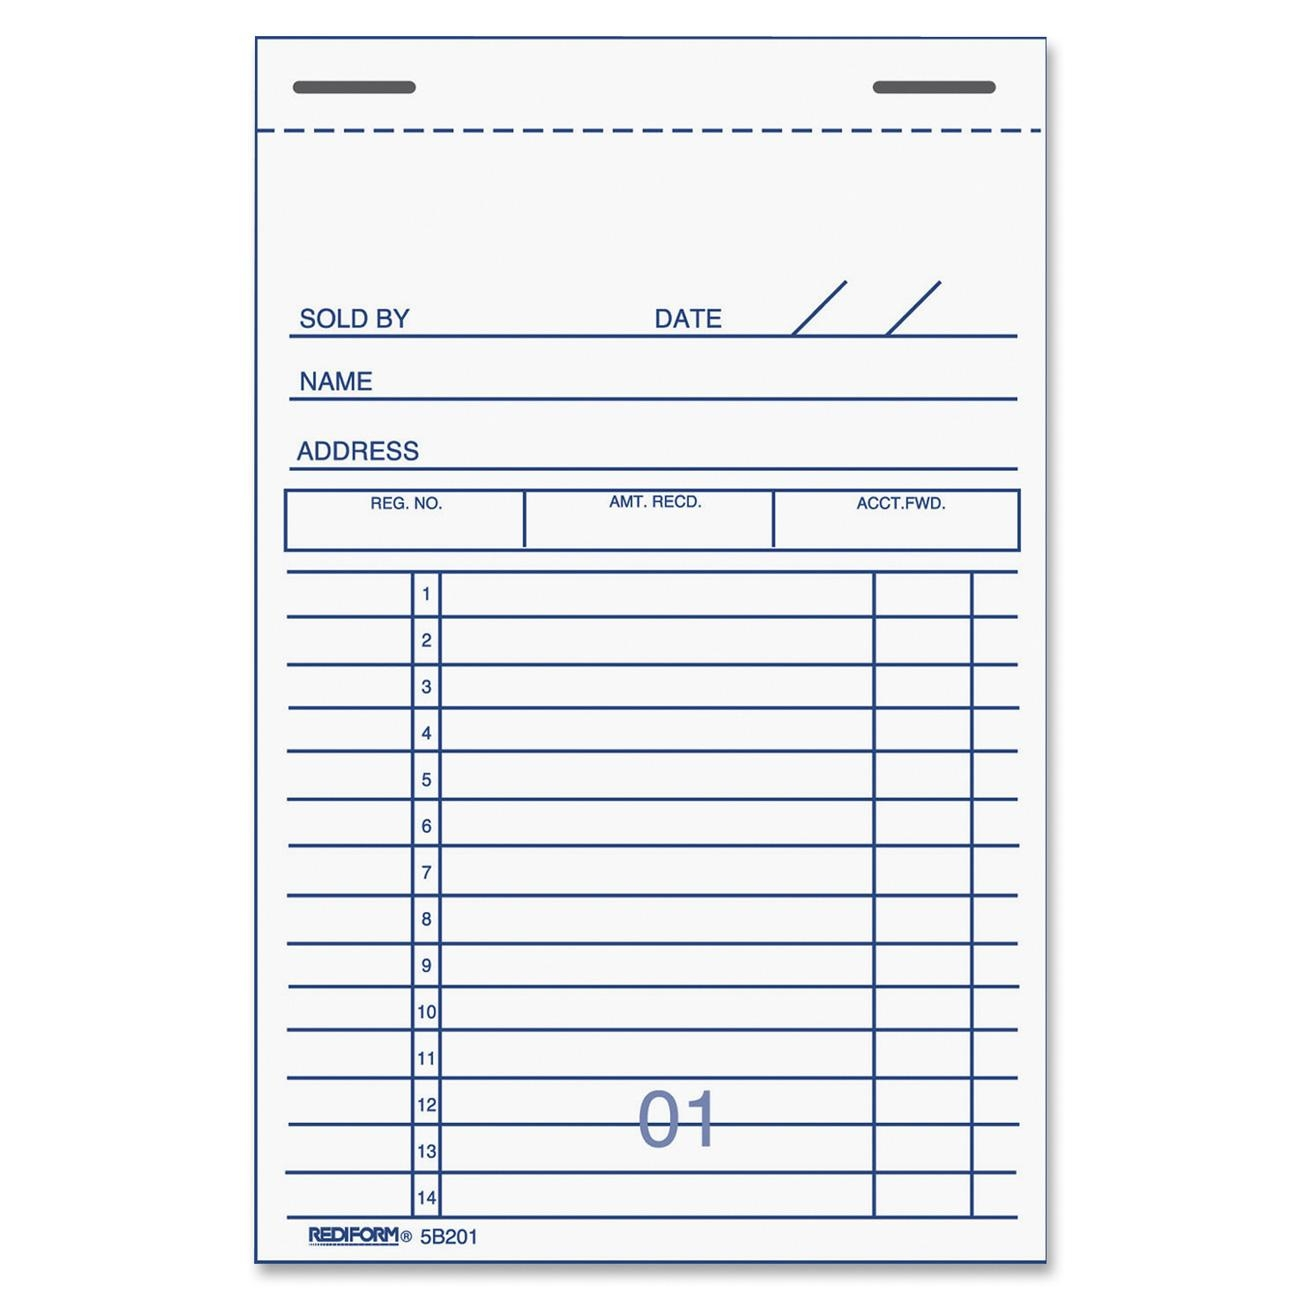 Wonderful Sales Receipts Template Free Dialysis Nurse Sample Resume A89e19b6 963f  4593 8411 51a519b4a9a0 1 Sales Receipts  Printable Receipt Book